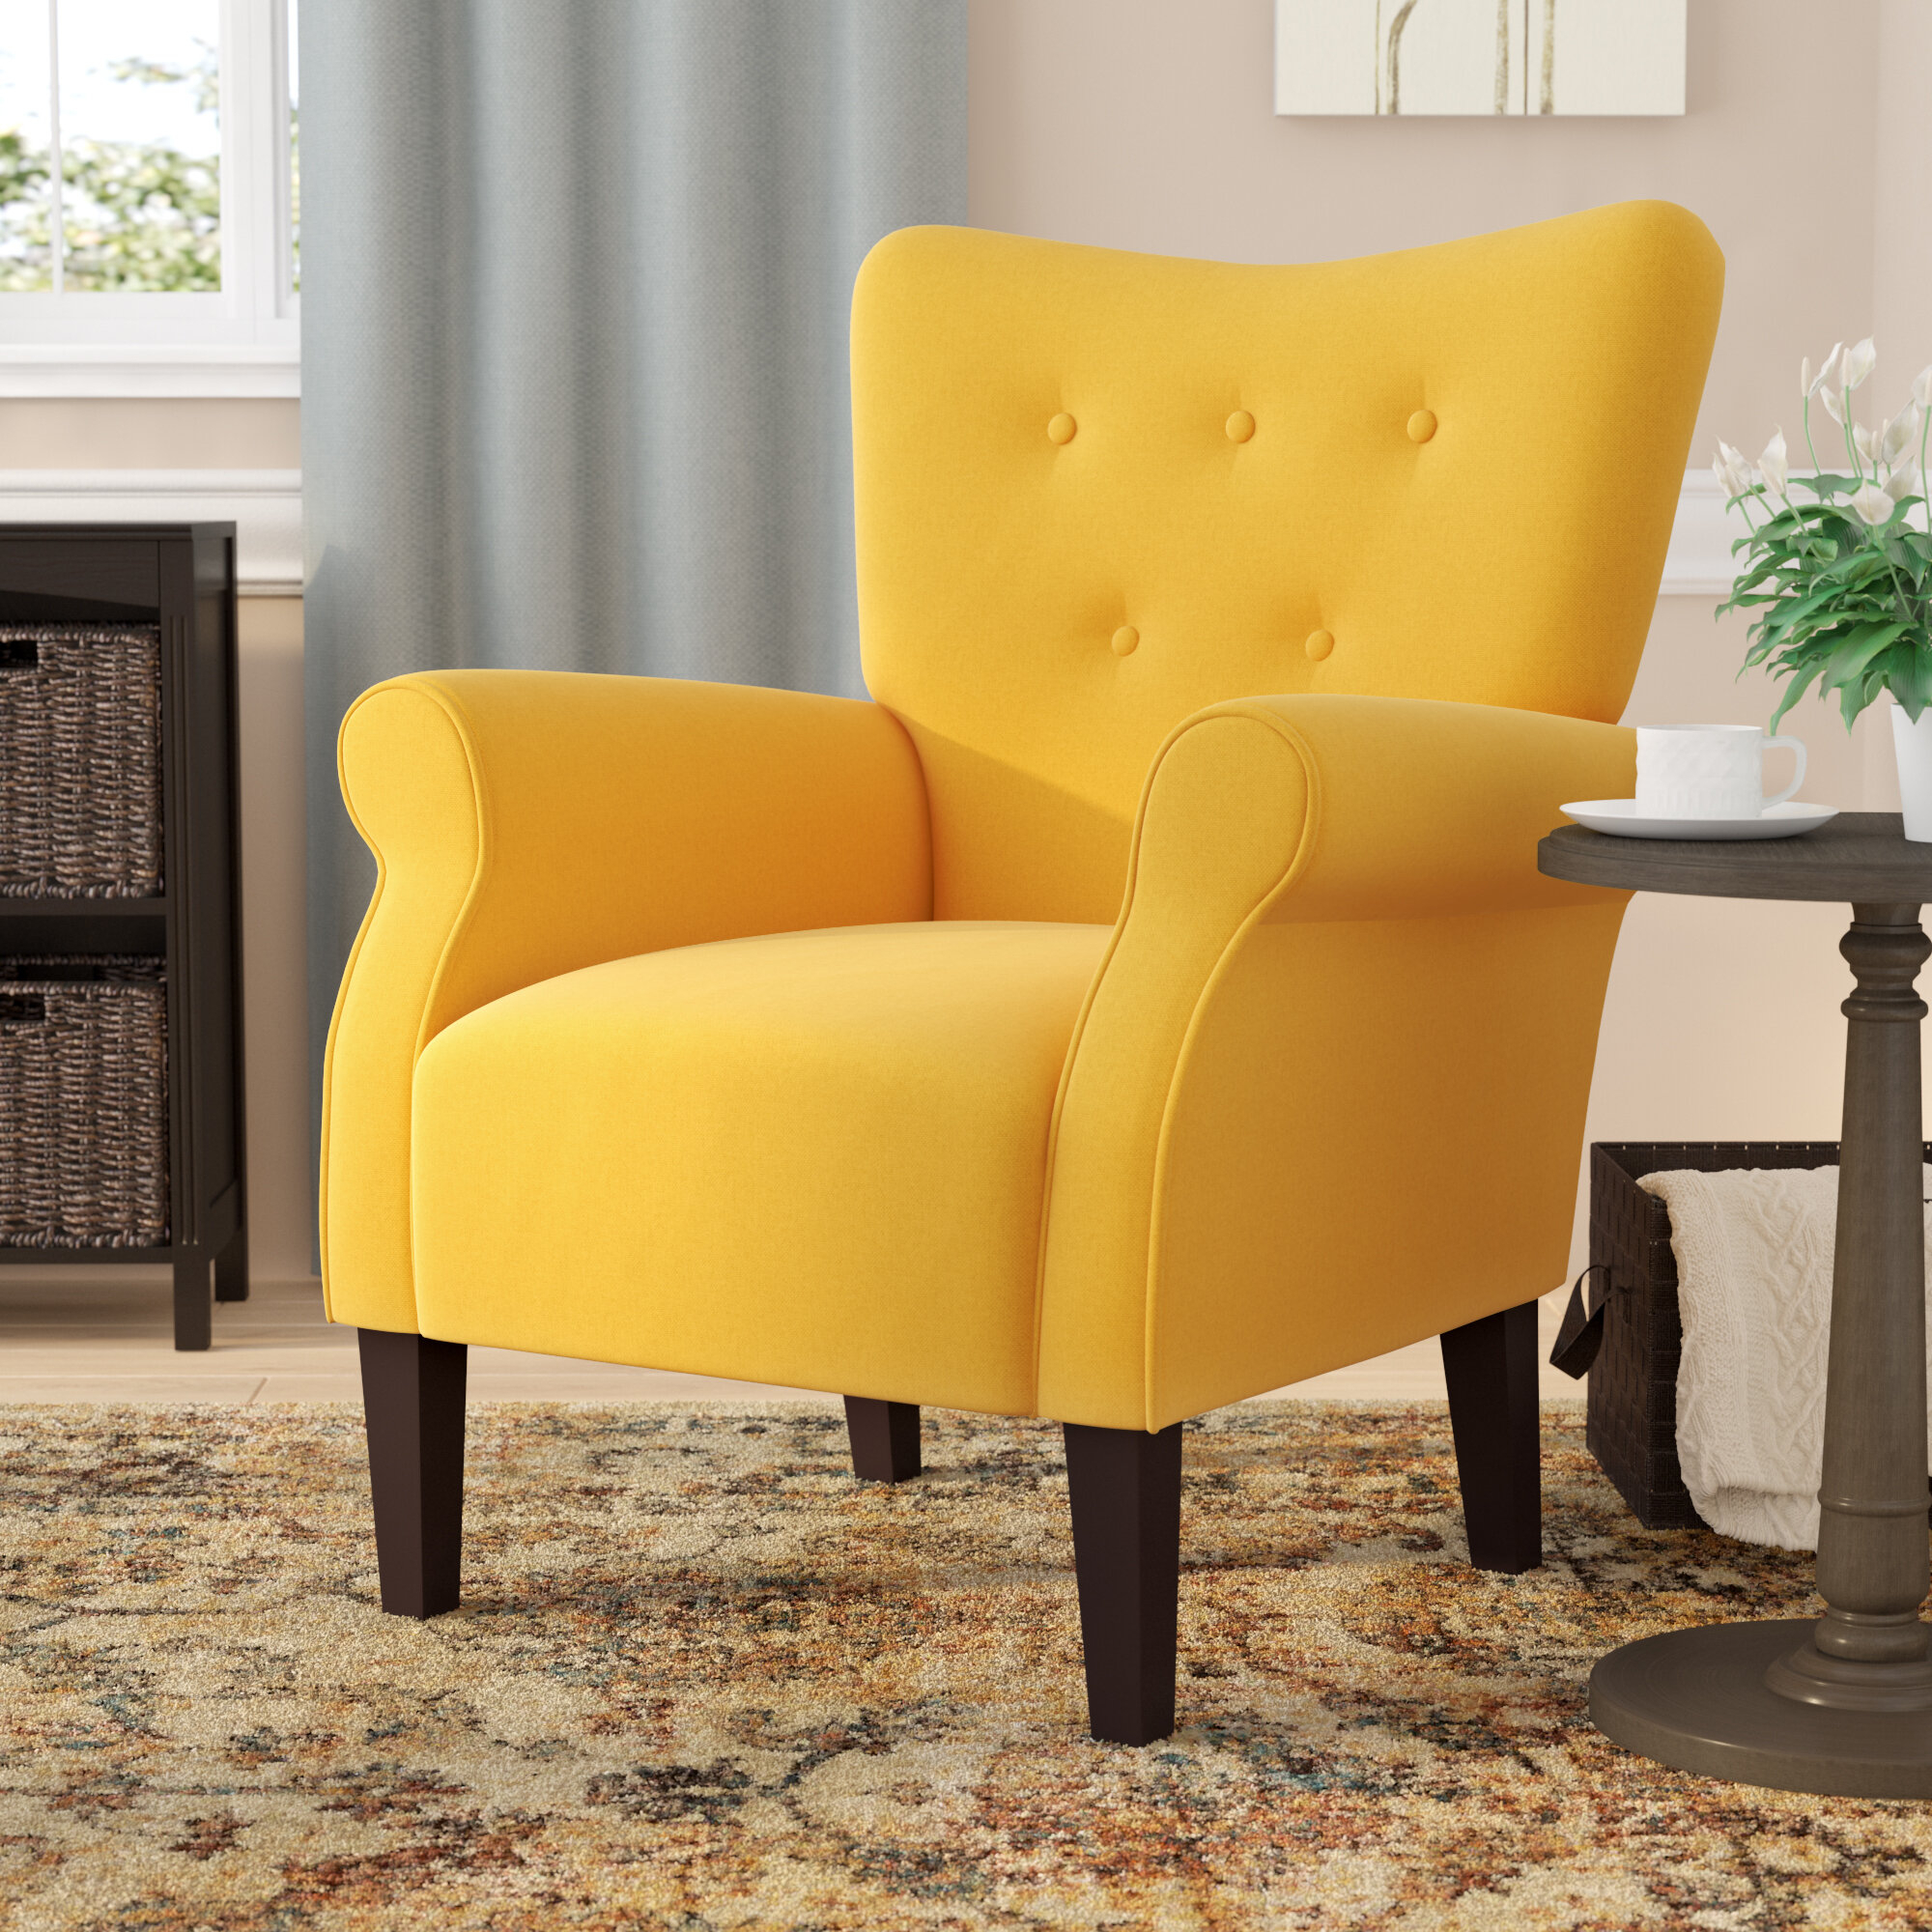 Armchairs | Wayfair Within Dallin Arm Chairs (View 7 of 15)